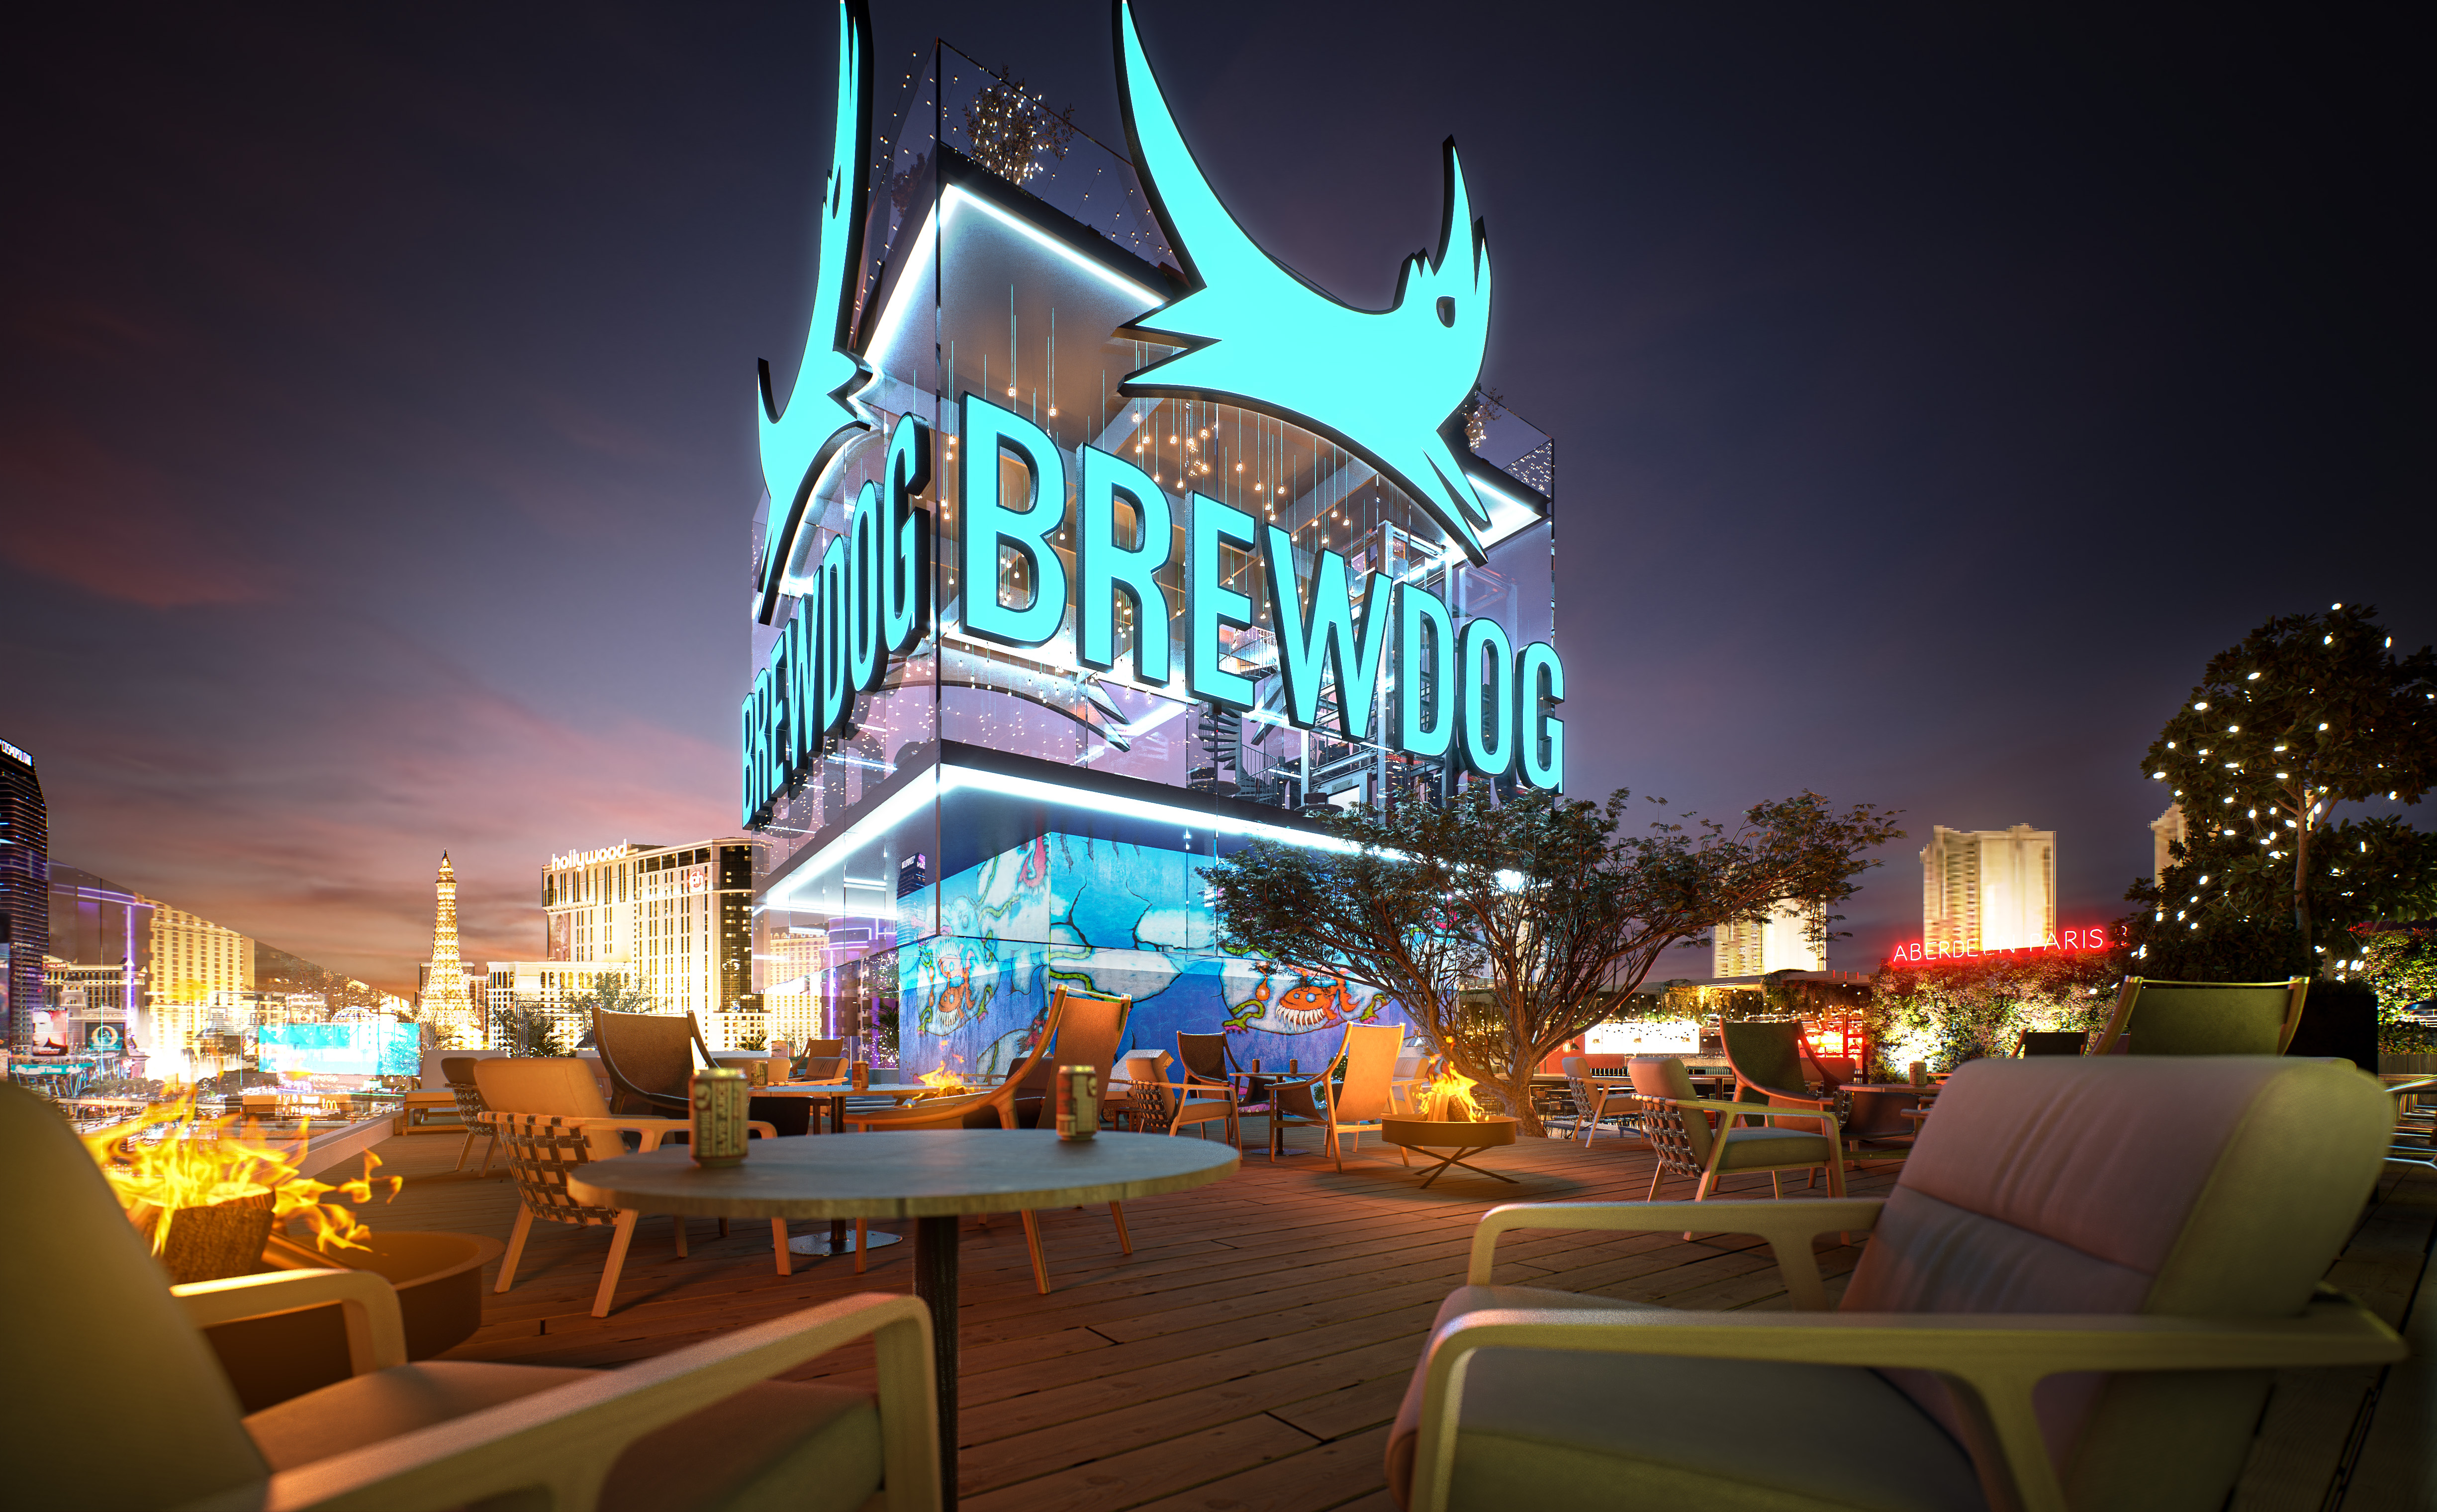 A rendering of the rooftop bar